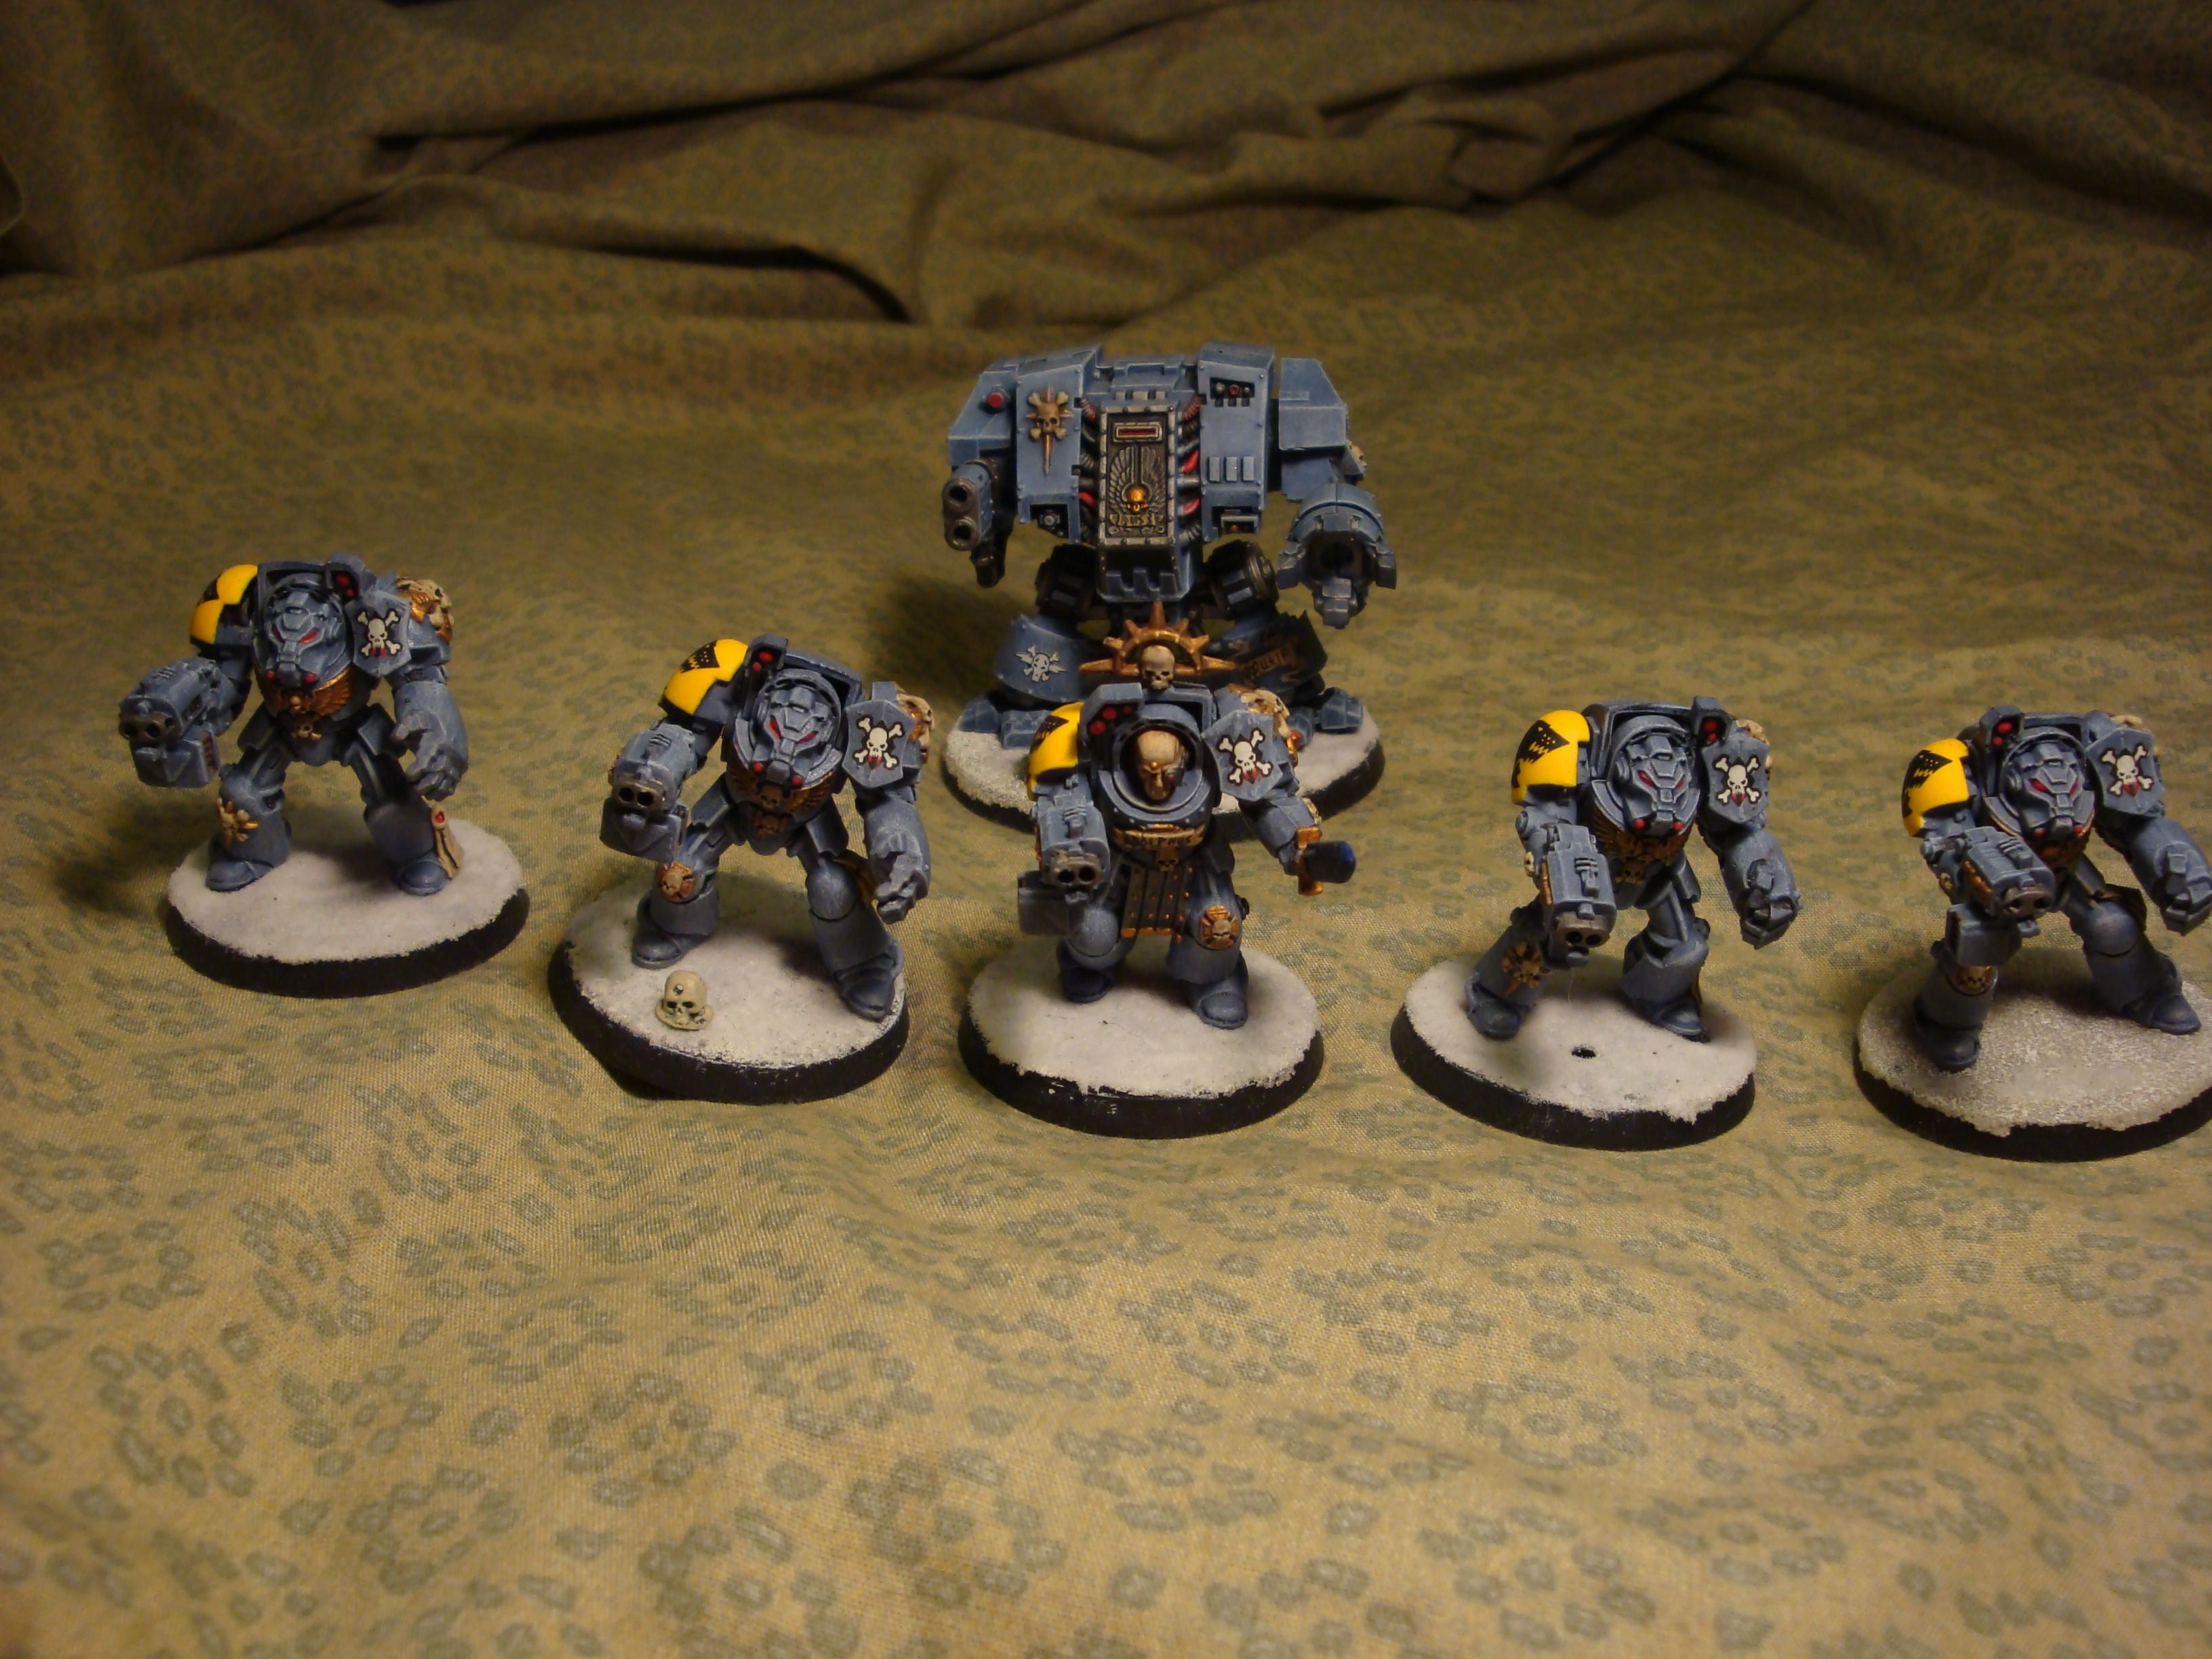 Dreadnought, Snow, Space Marines, Space Wolves, Terminator Armor